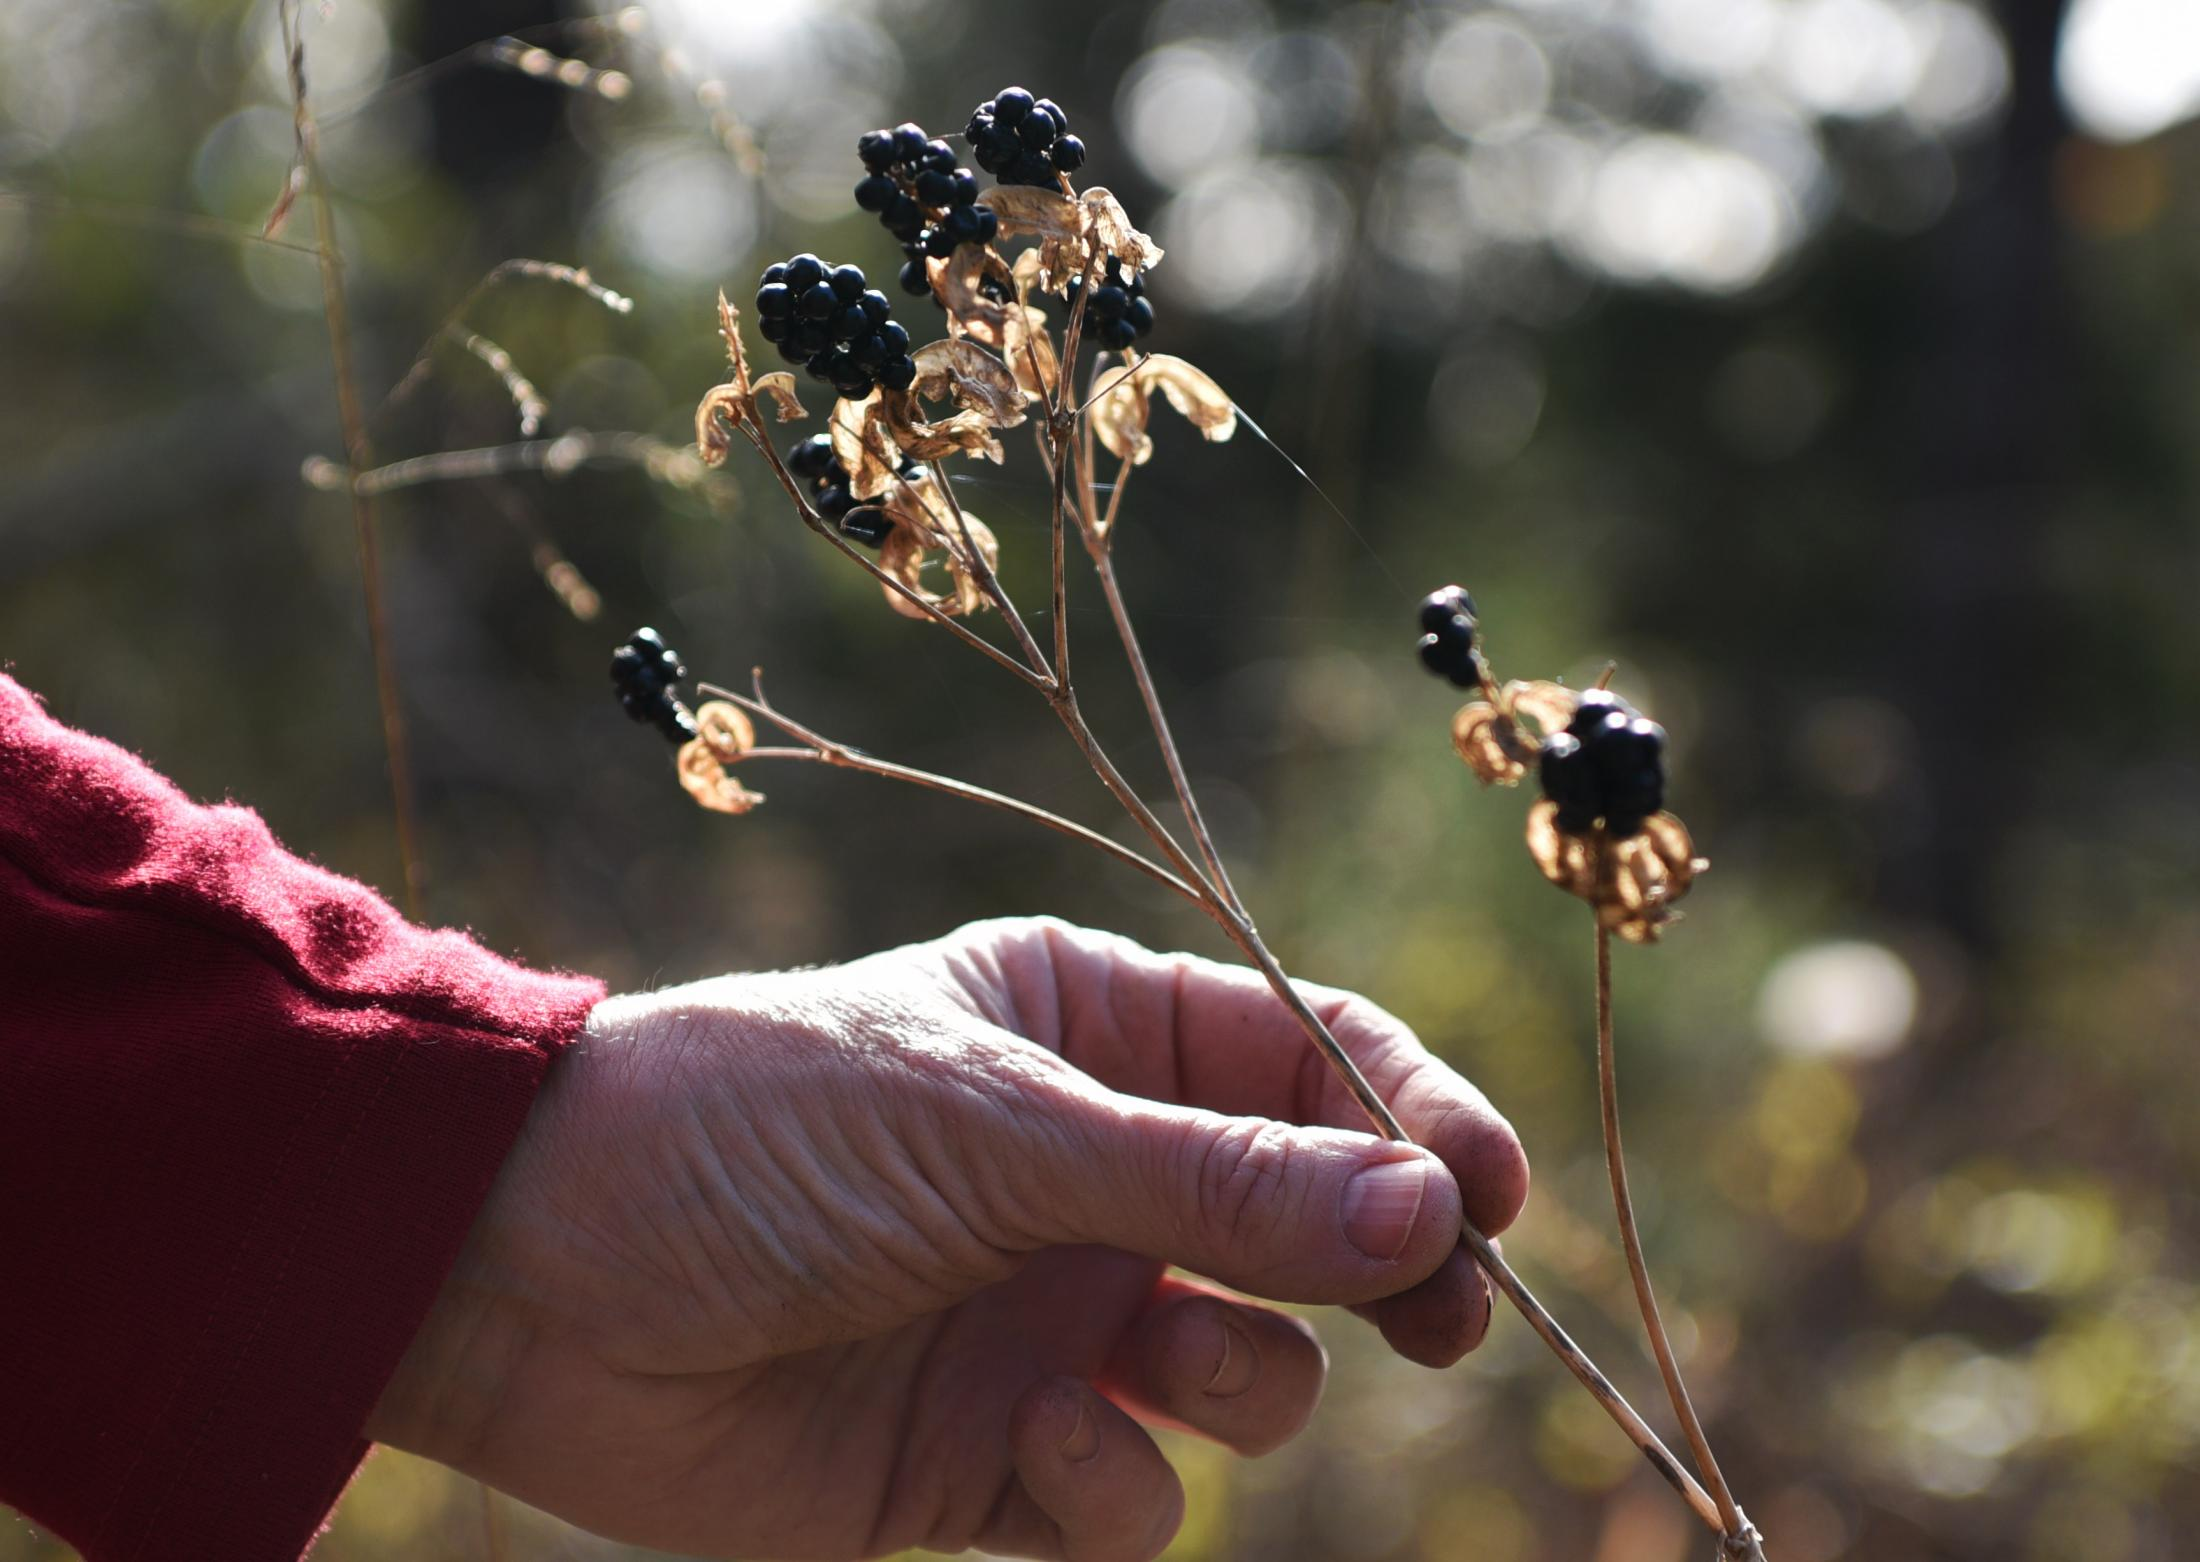 """Margaret Waddell picks a wild blackberry plant on her land at Crystal Lake on Nov. 3, 2019. """"Being out here reminds me of how connected everything is,"""" Waddell said. 'Ancient wisdom describes human beings as having five layers of experience: the environment, the physical body, the mind, the intuition, and our spirit. If we surround ourselves with a healthy environment, it has a positive impact on all other aspects of our existence."""""""